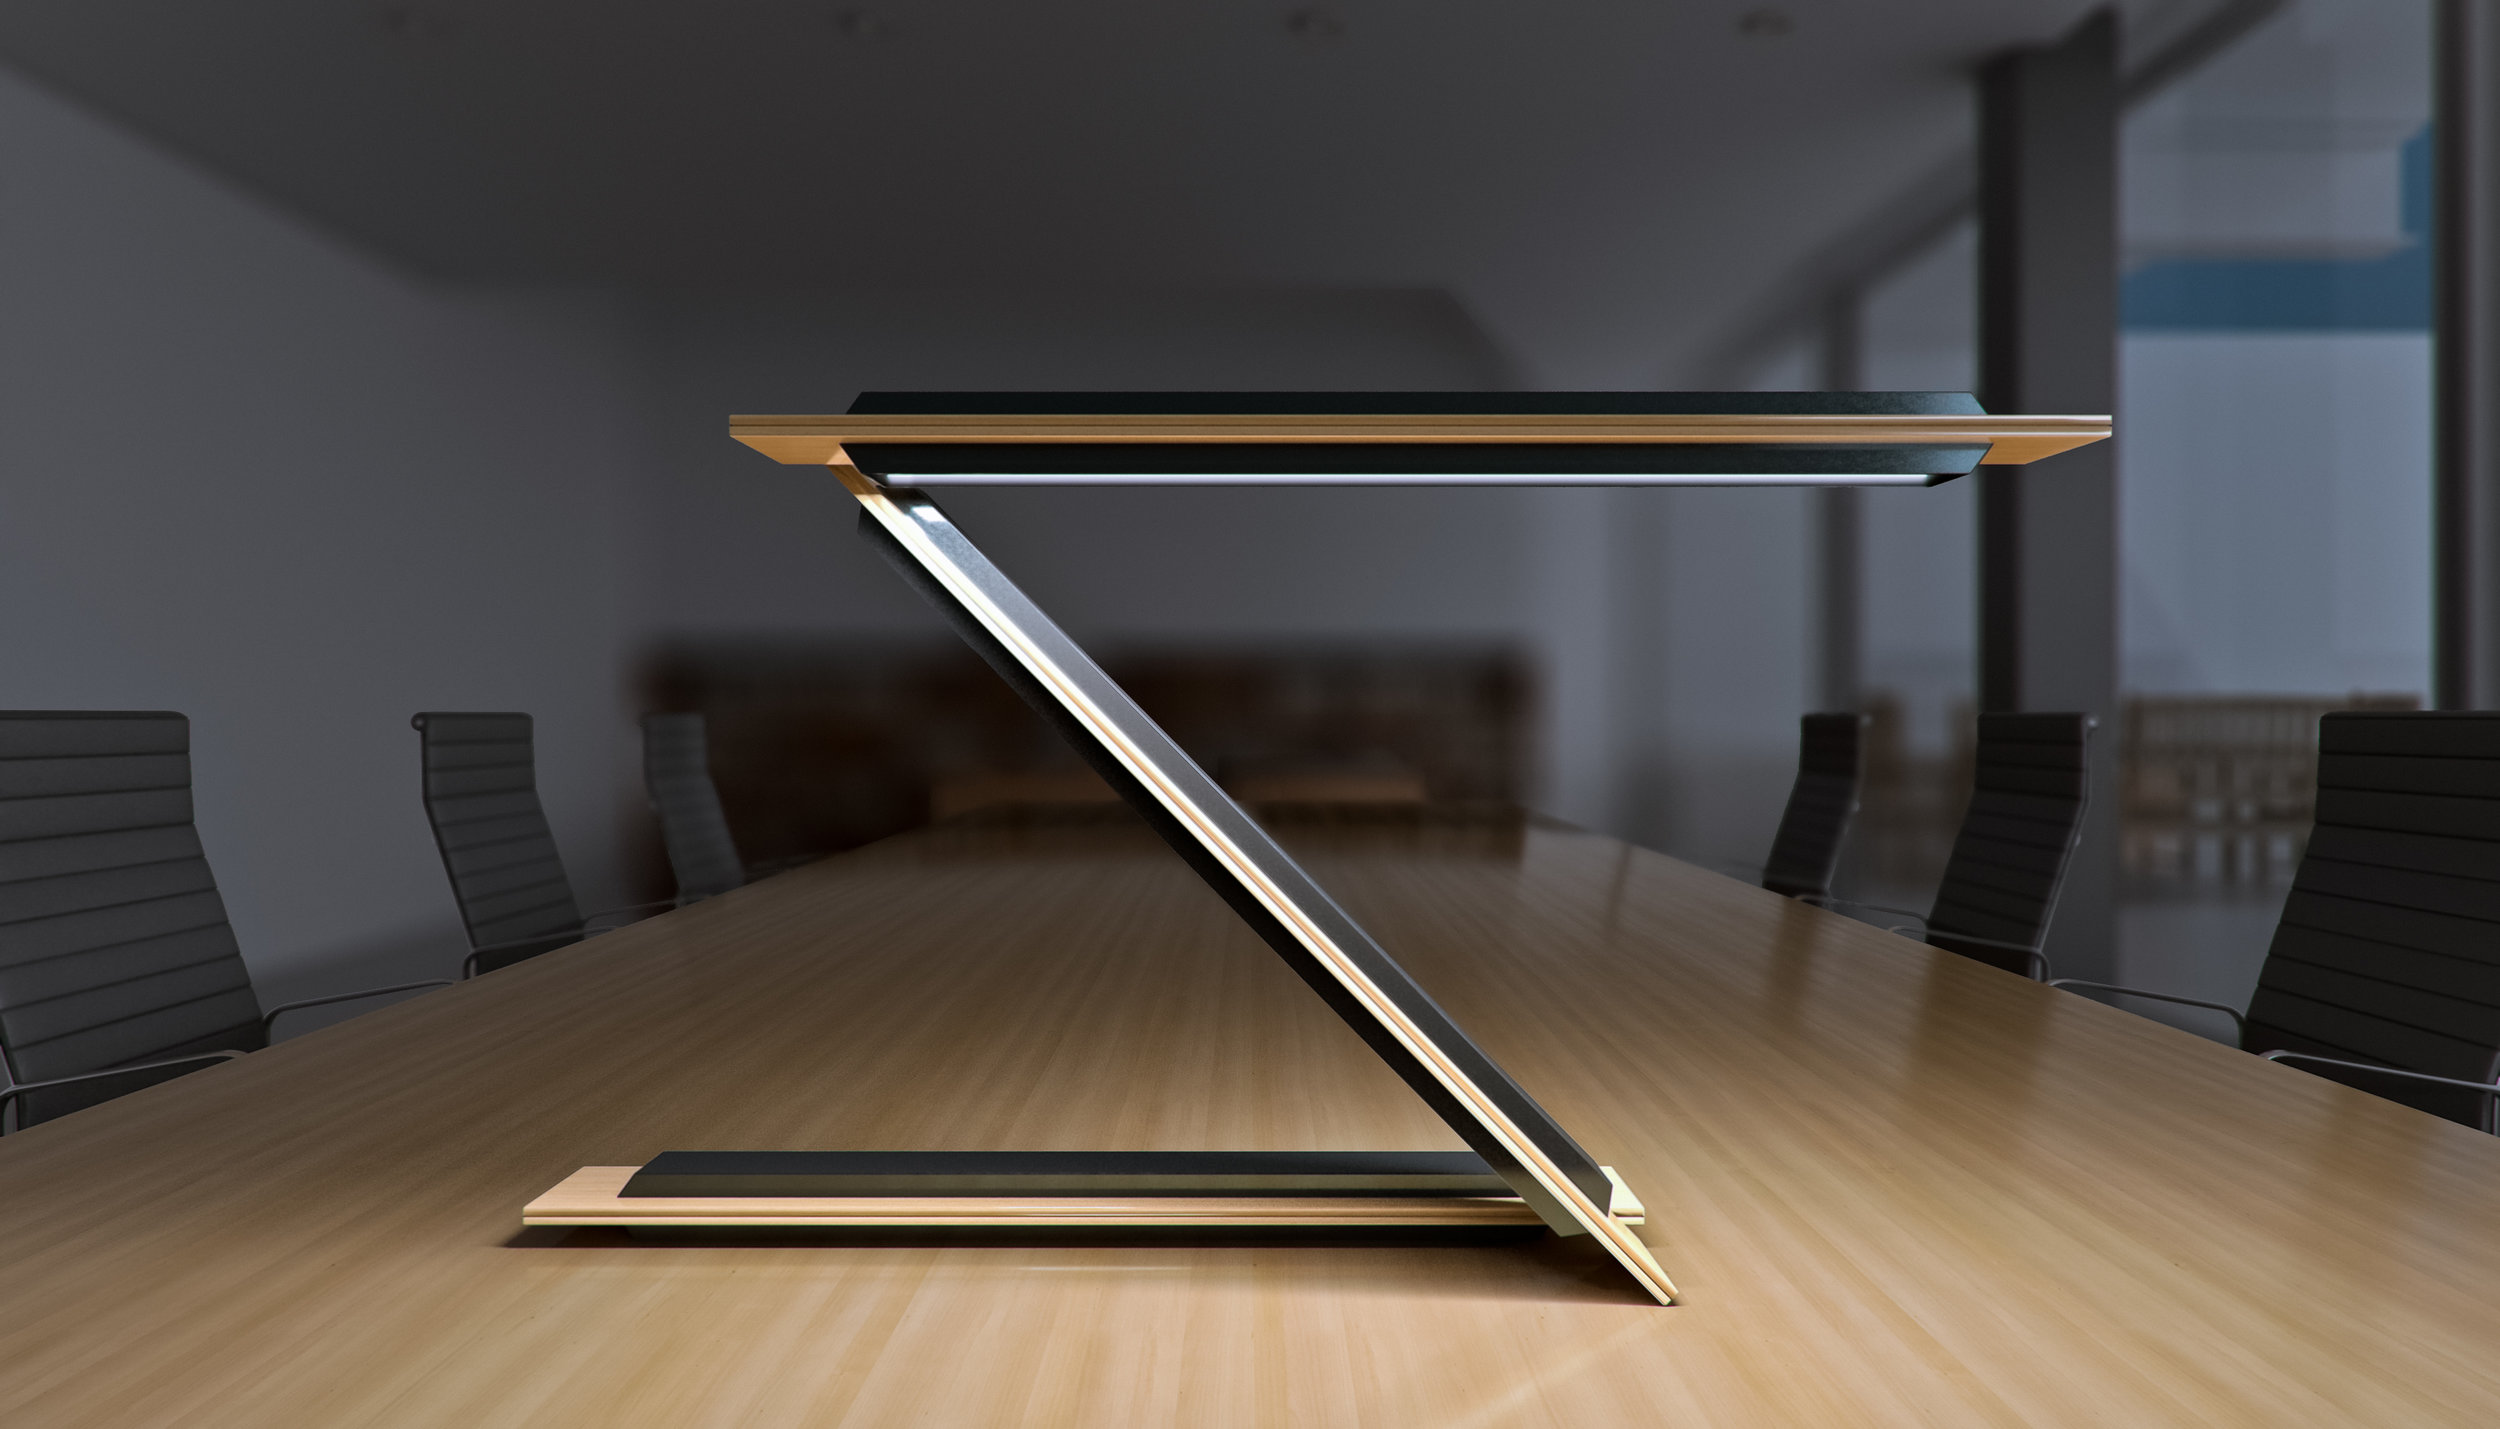 lamp Z on table.jpg